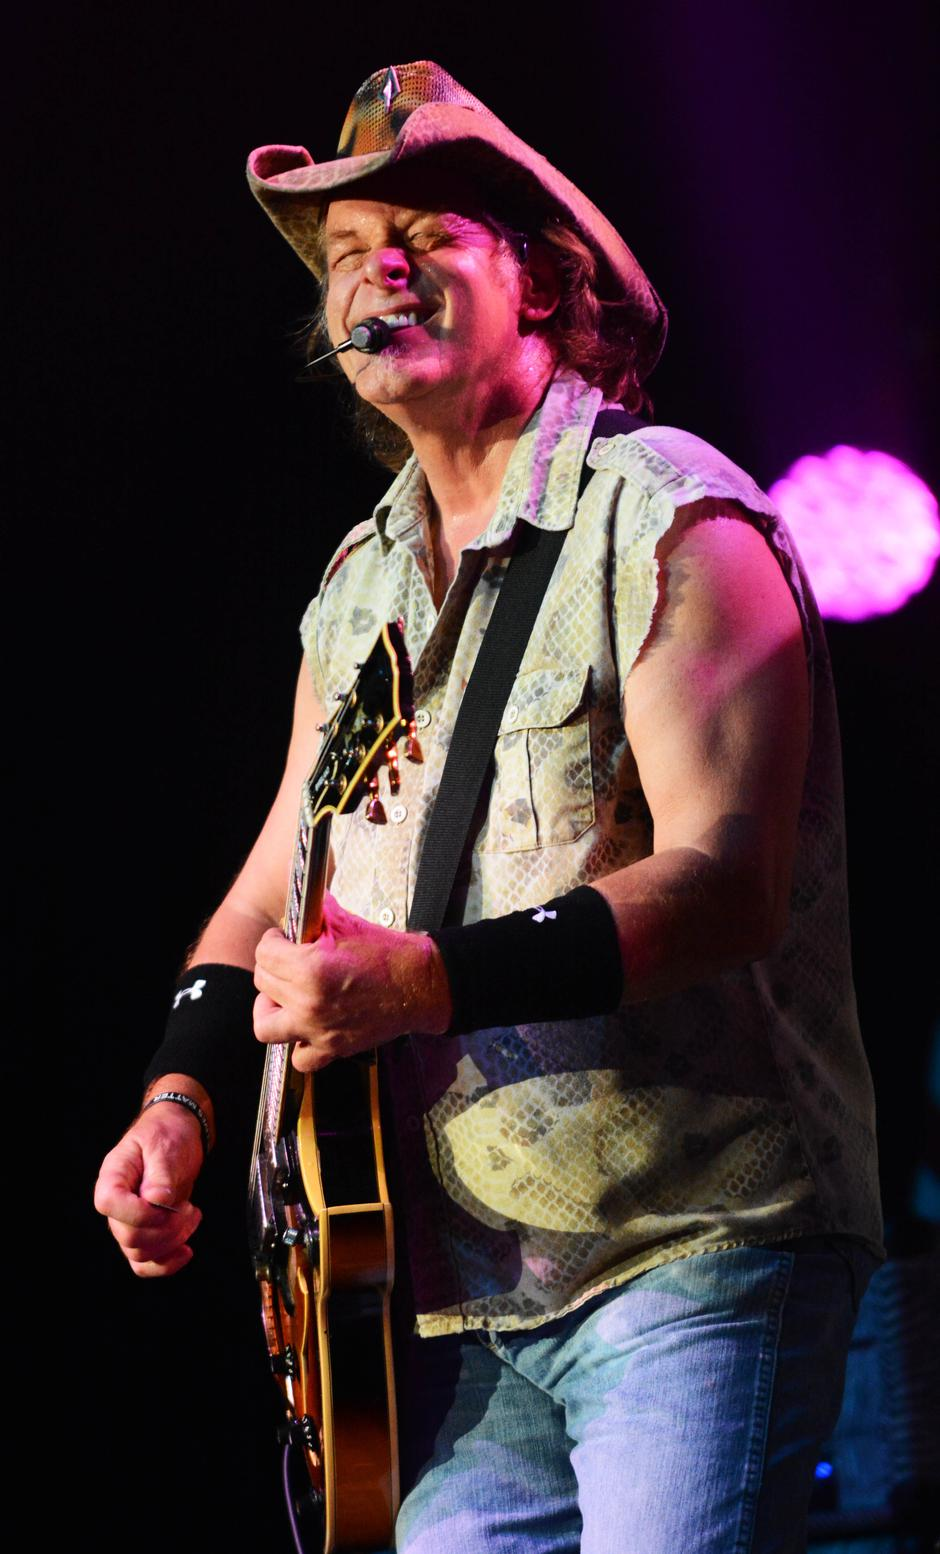 Ted Nugent performs at the Paramount Theater | Autor : PS3/WENN/PIXSELL/WENN/PIXSELL.